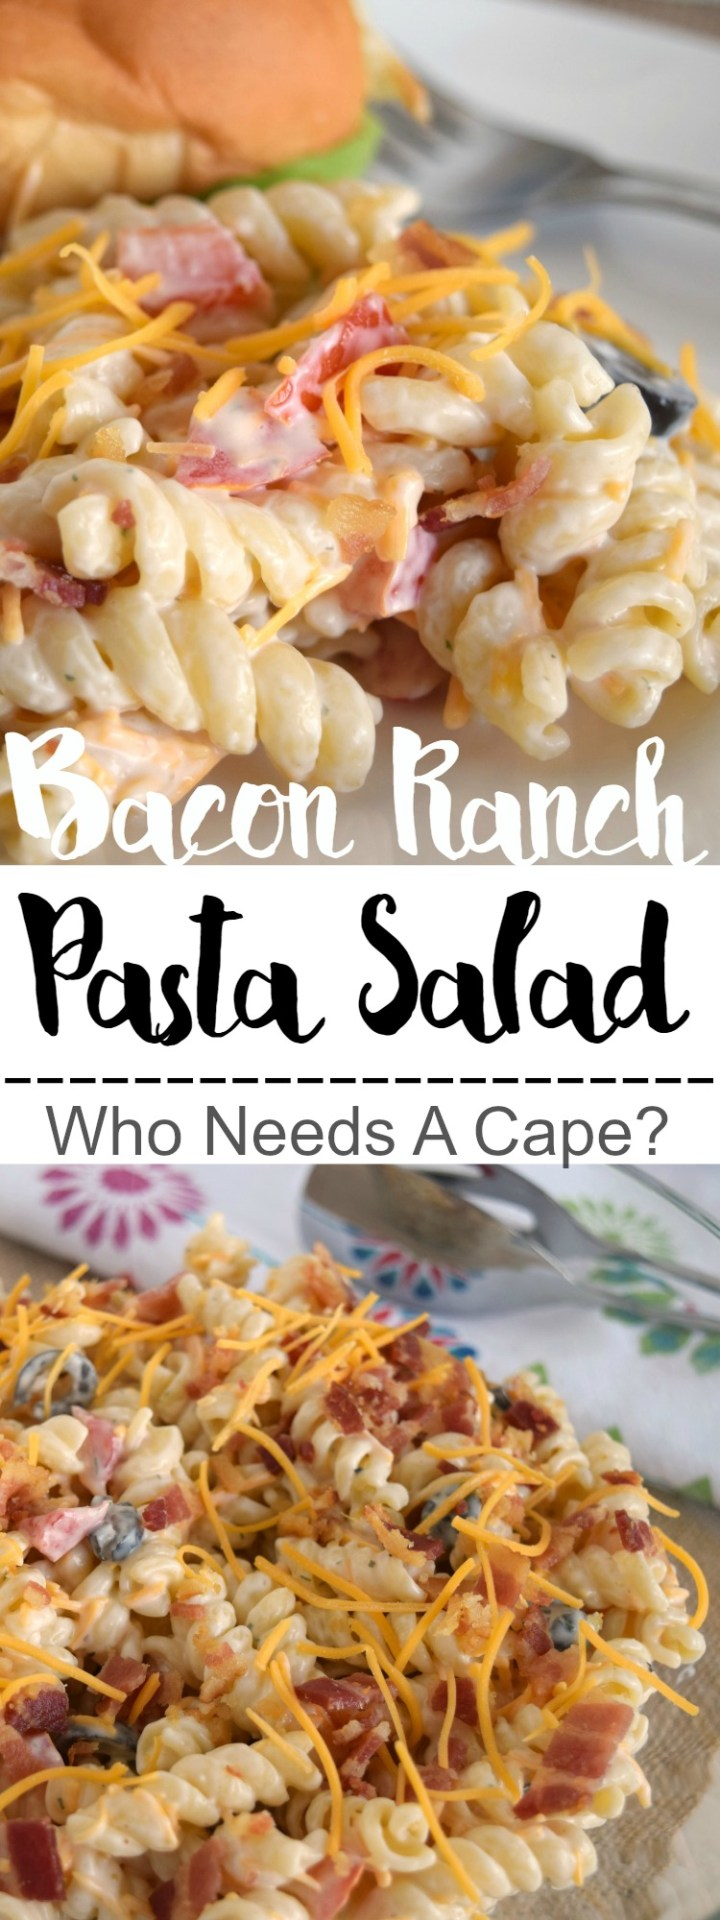 Bacon Ranch Pasta Salad is the perfect side for all your summer meals! Creamy, easy to prepare, this is a hit at BBQ's and picnics!